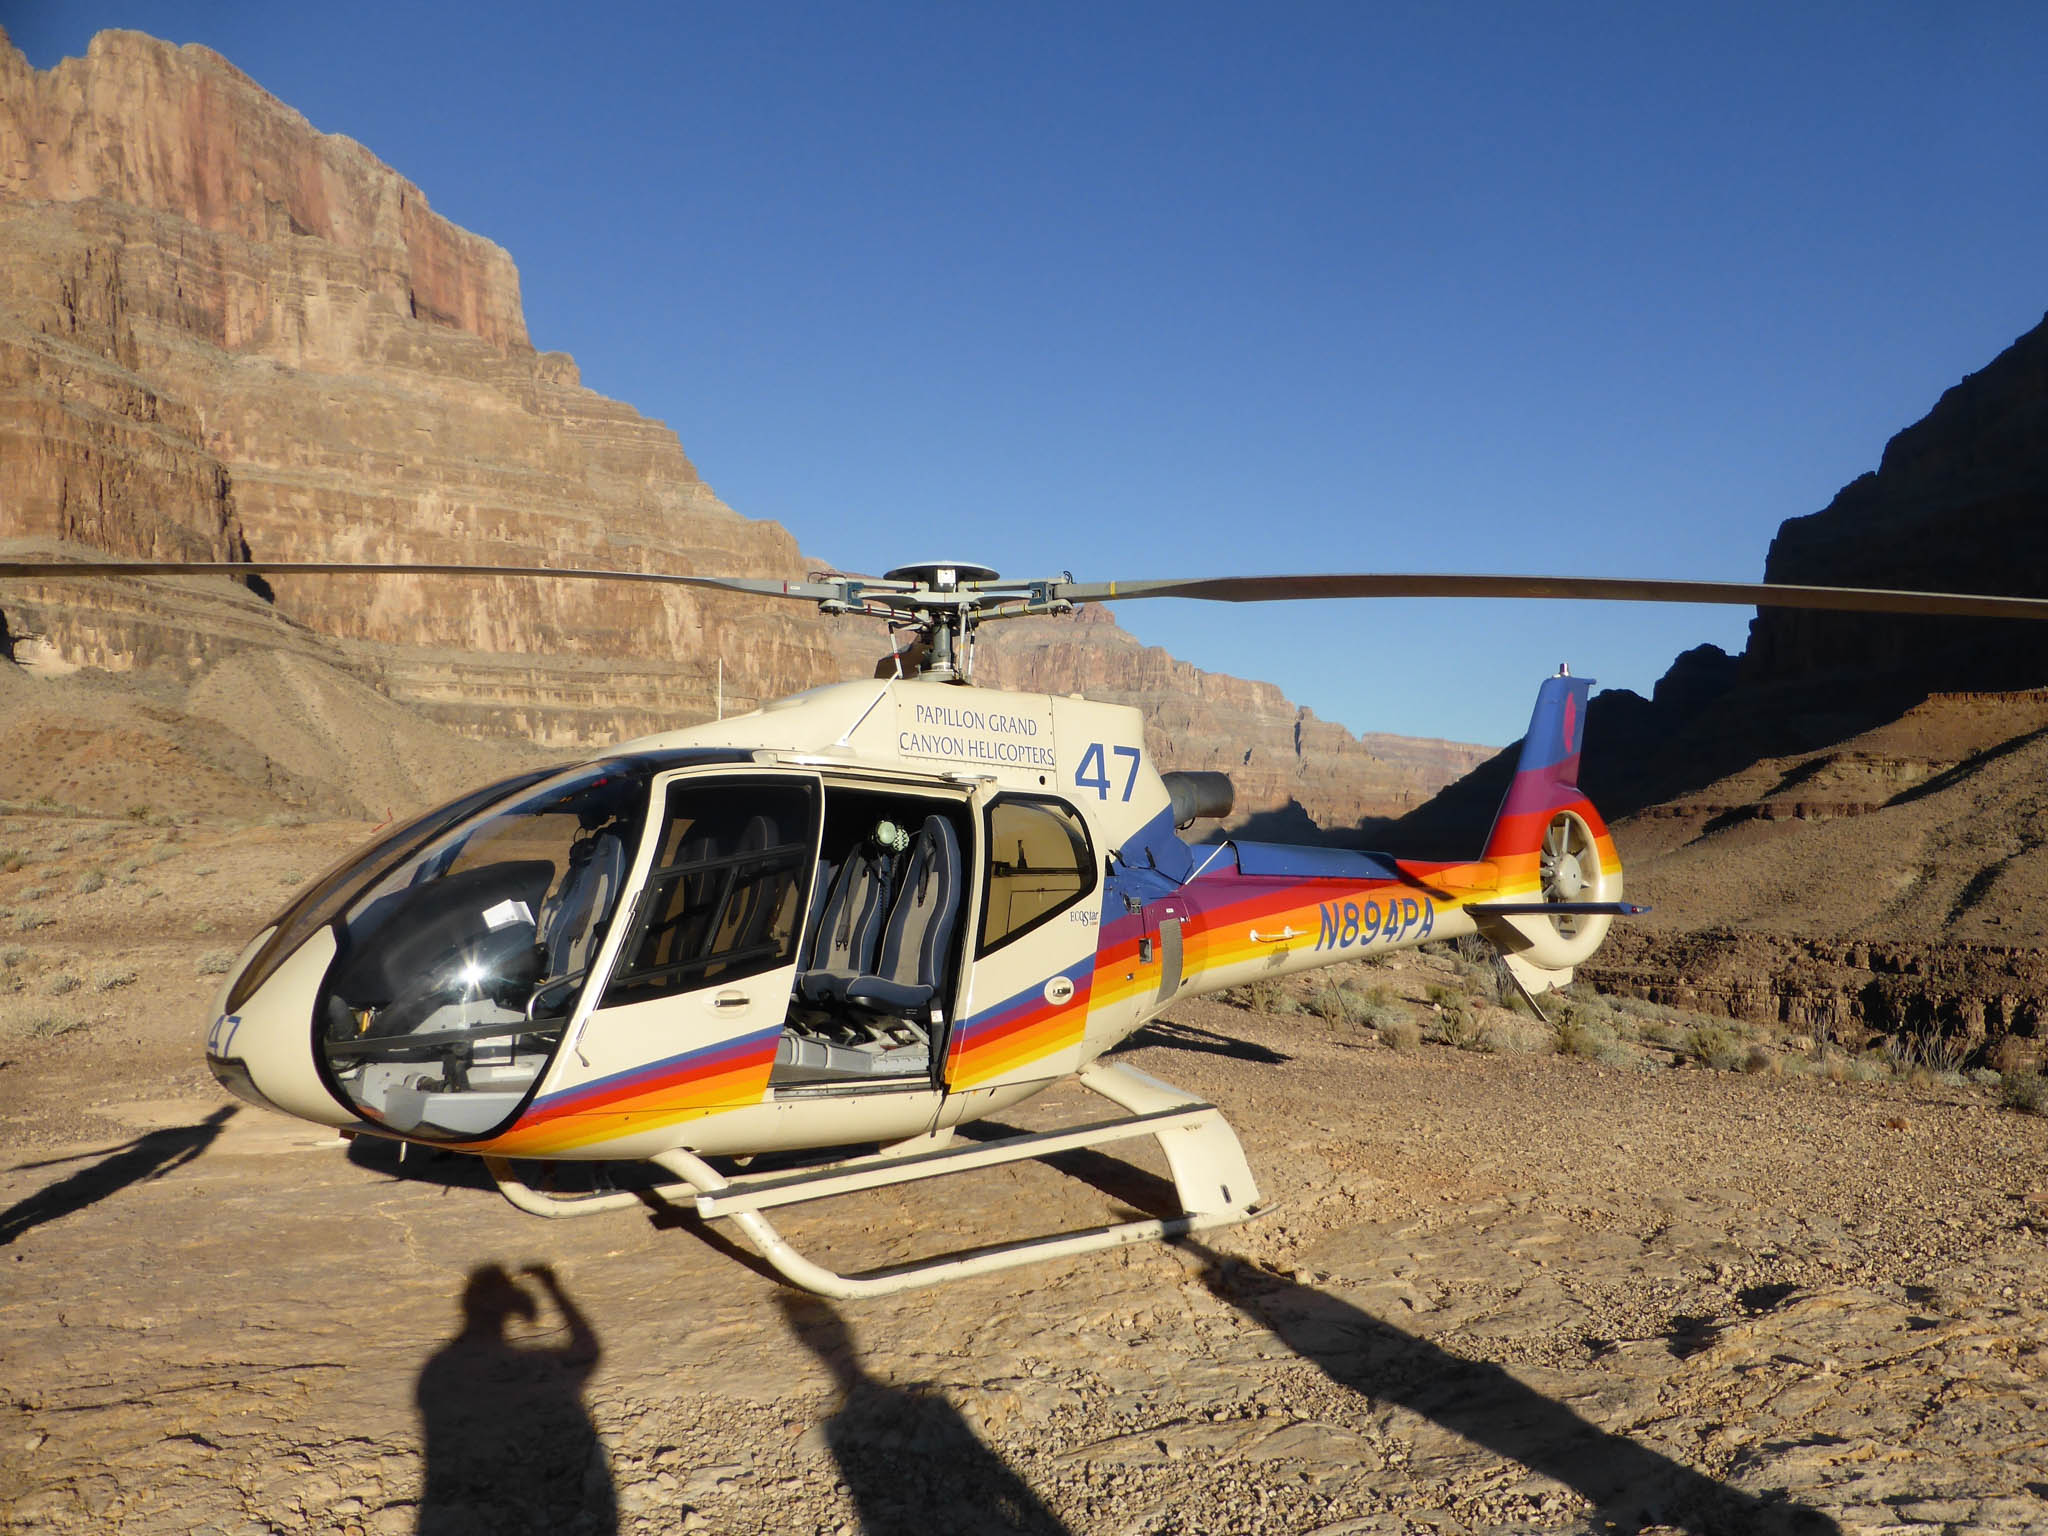 Gran Canyon helicopter tour